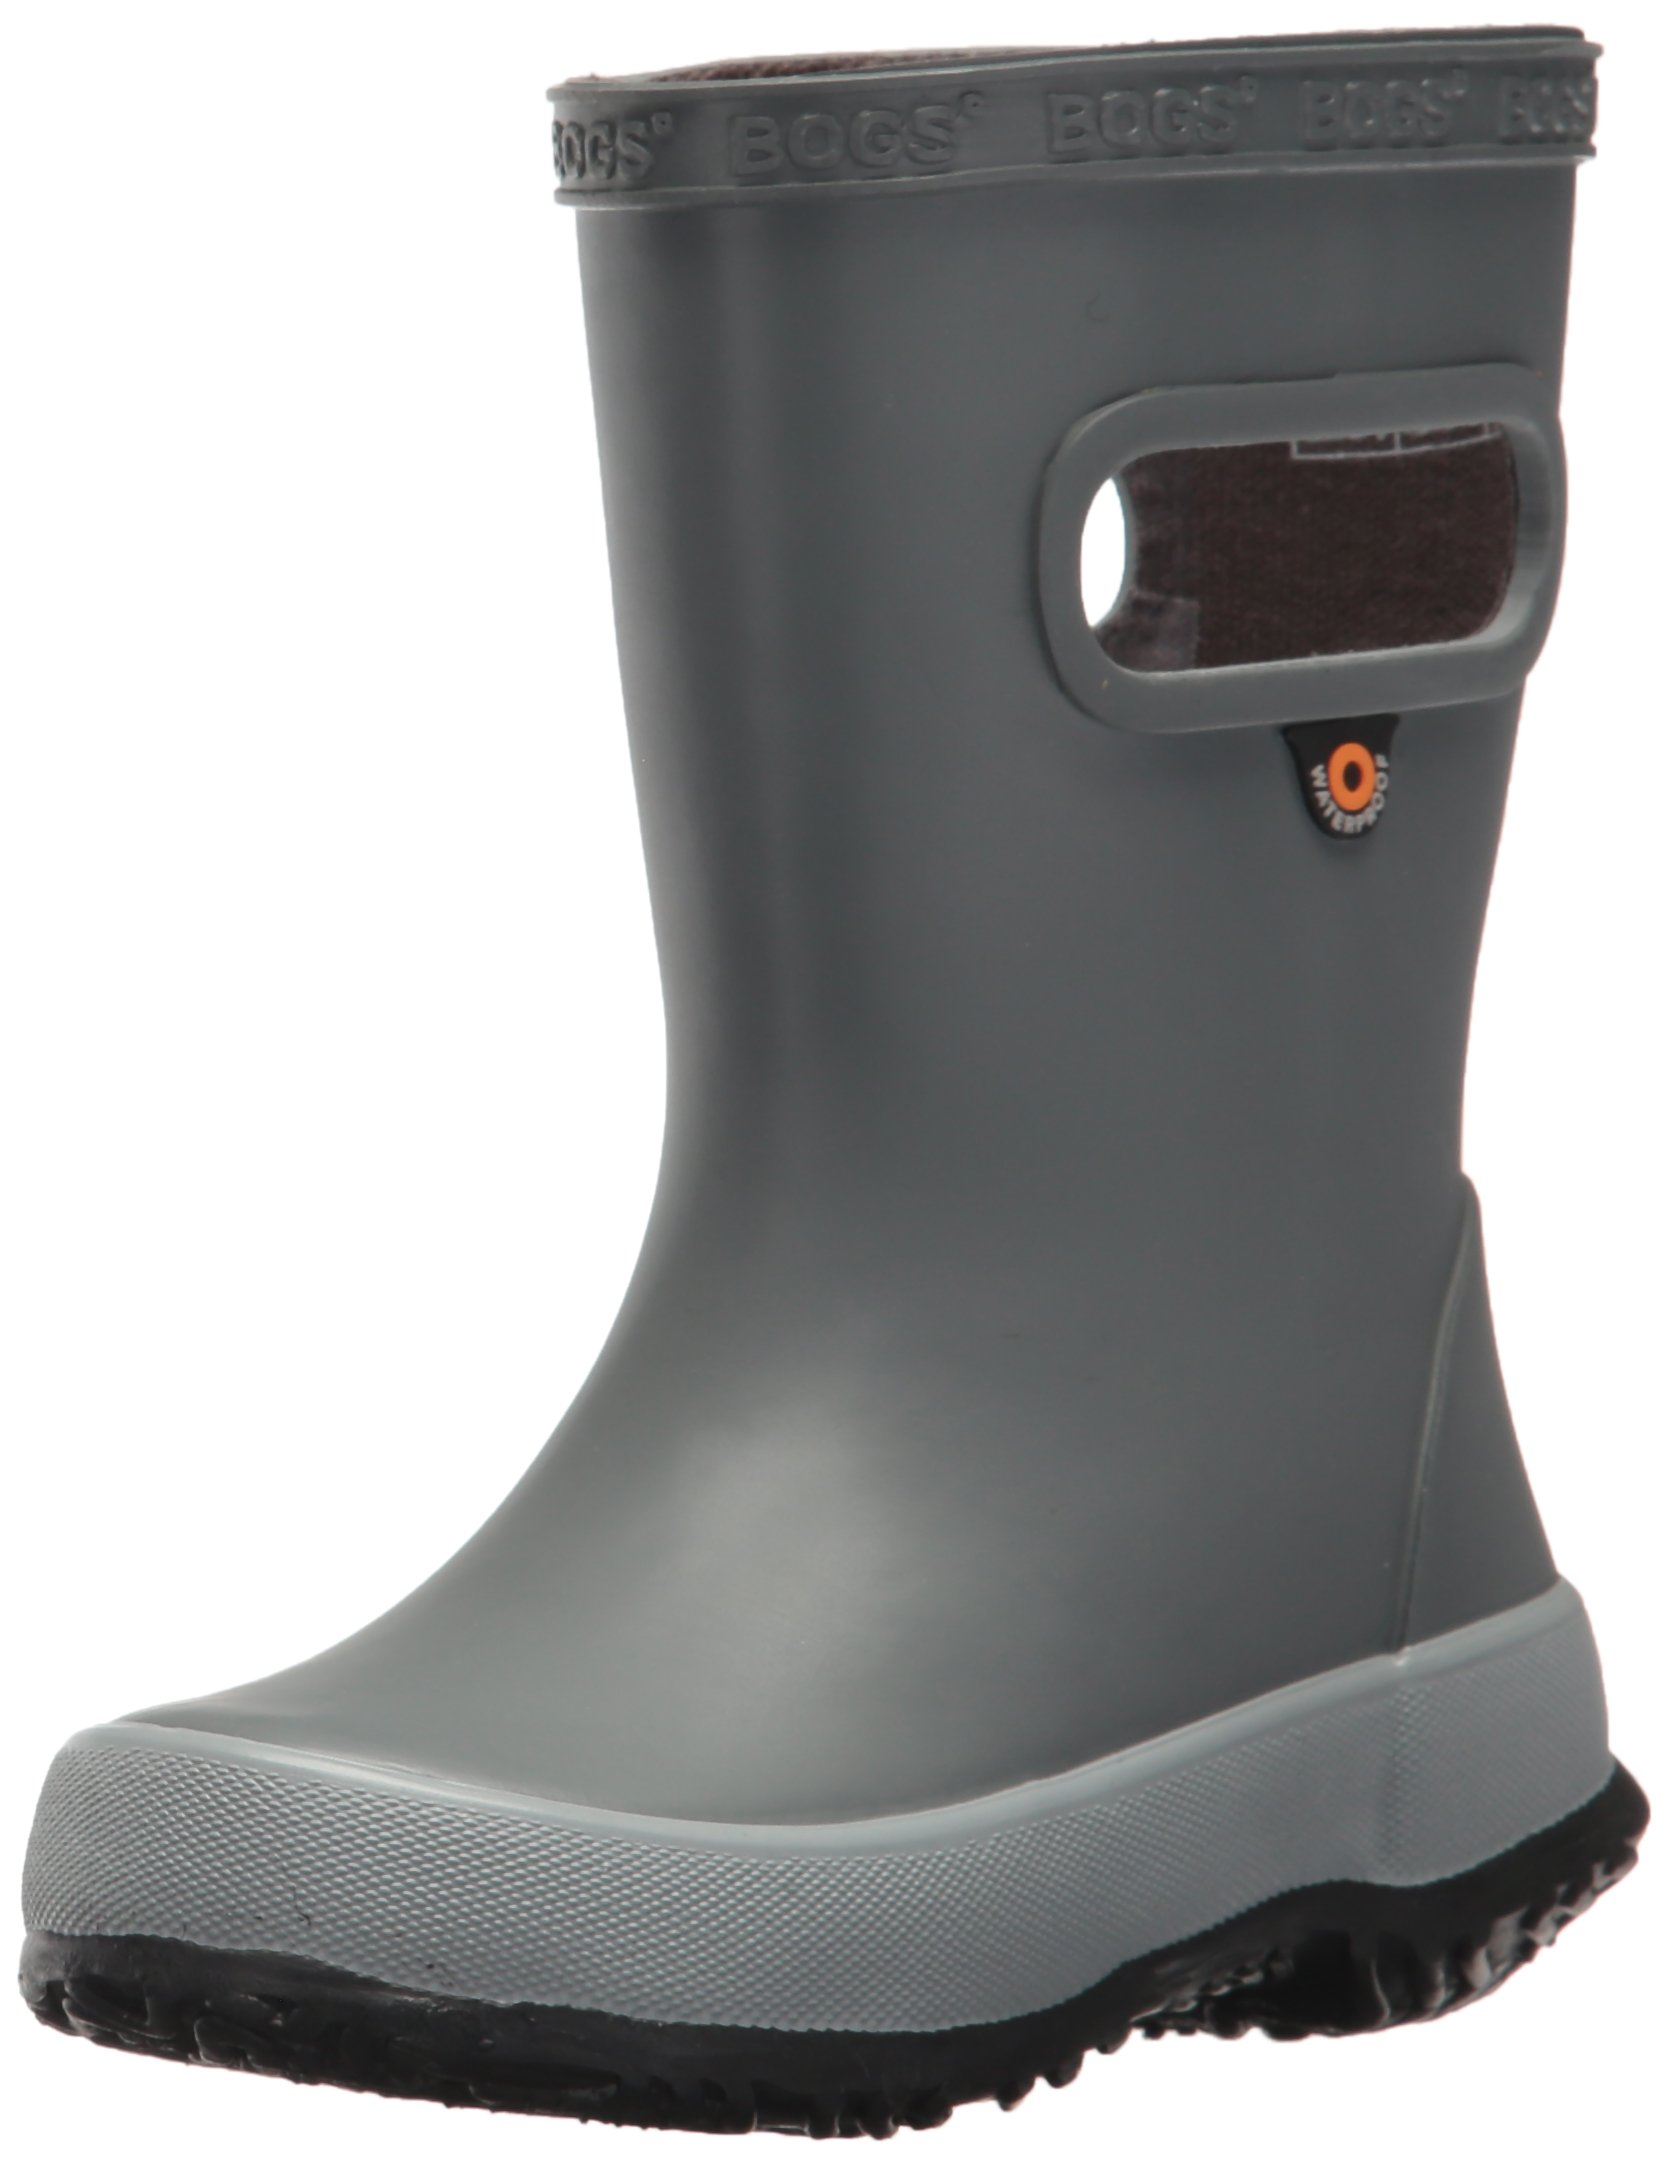 Bogs Kids' Skipper Waterproof Rubber Rain Boot for Boys and Girls,Solid Gray,10 M US Toddler